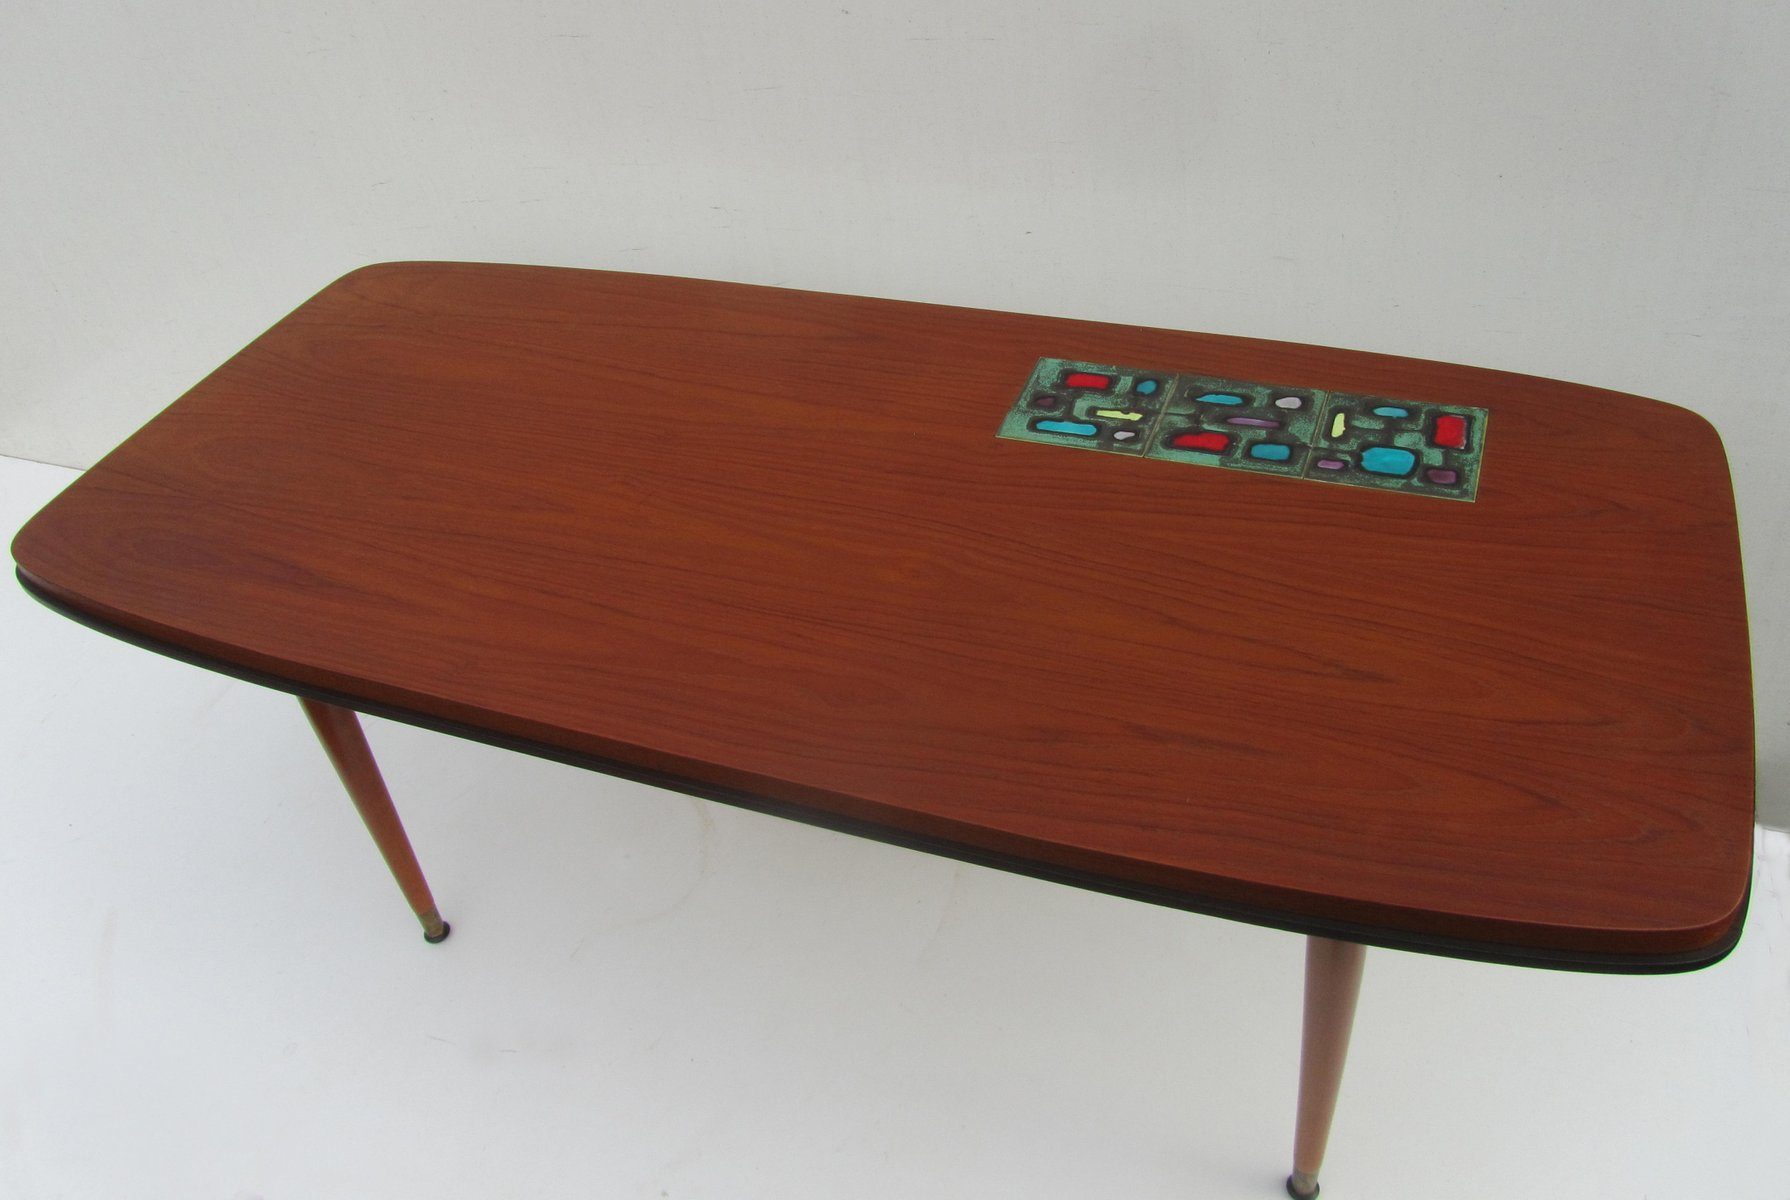 Vintage Teak Coffee Table with Ceramic Tile 1950s for sale at Pamono